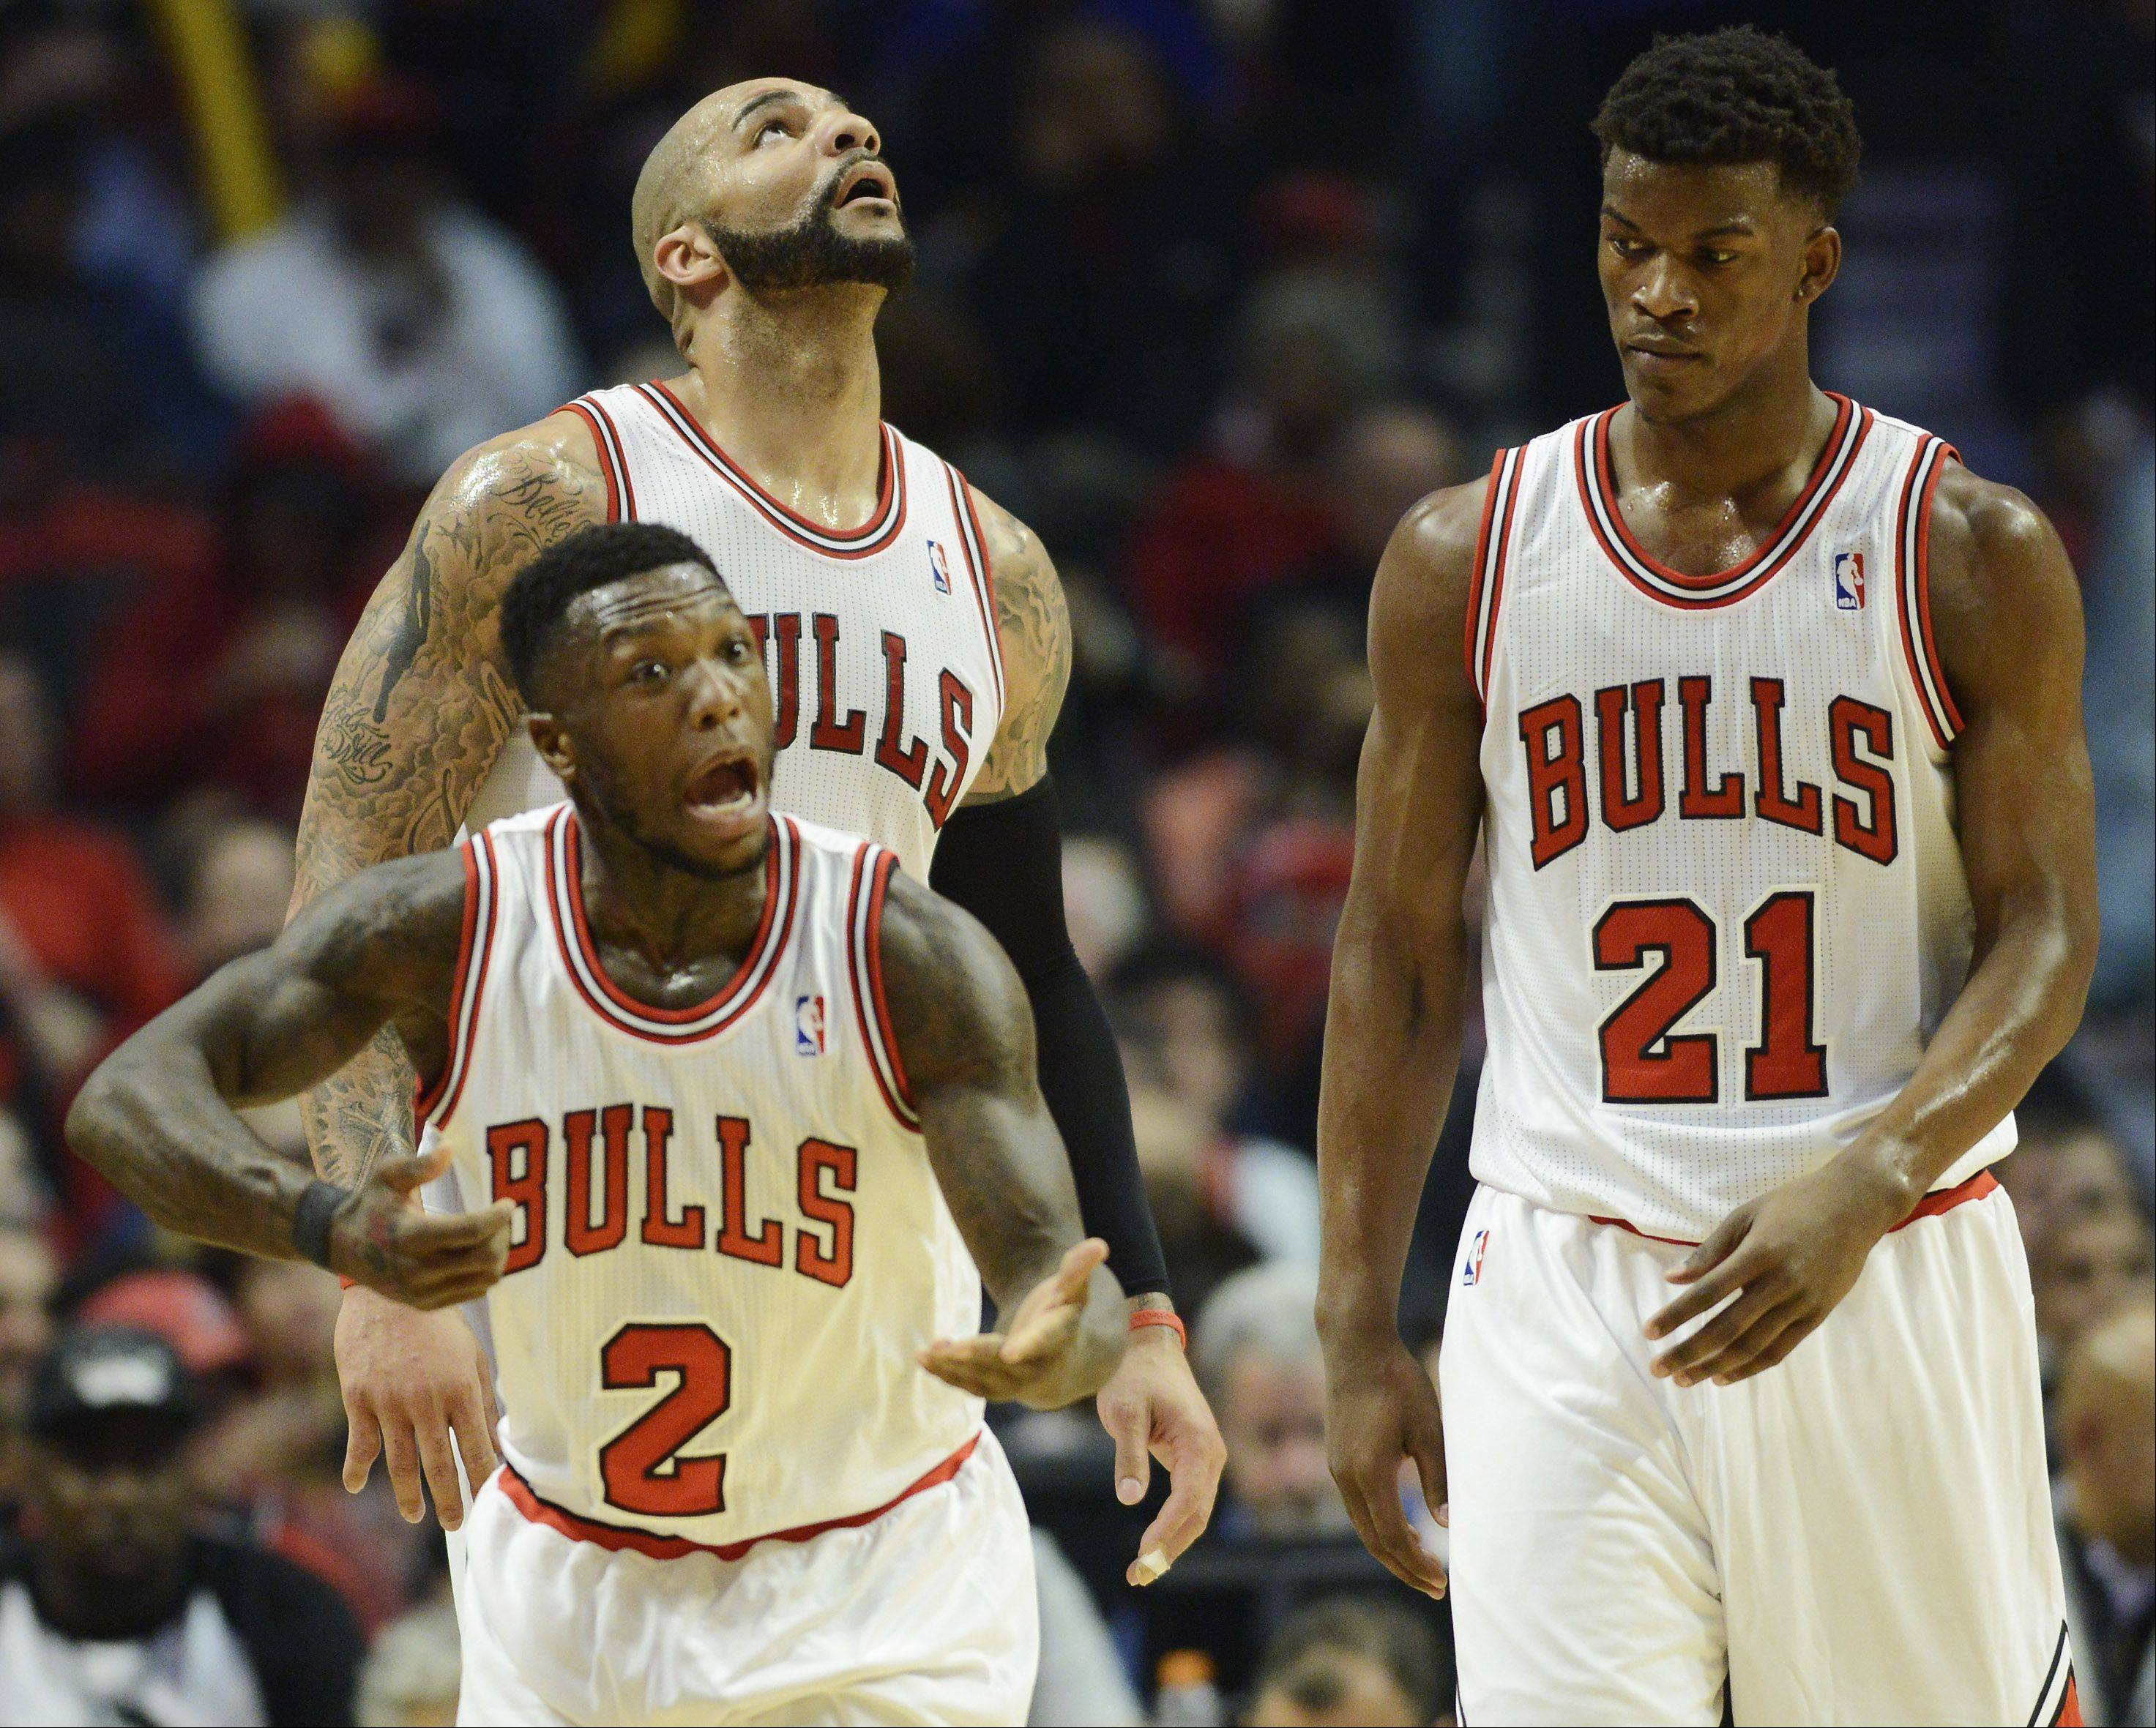 Nate Robinson of the Chicago Bulls, front, reacts after drawing contact on his chin from a Brooklyn Nets player in Game 6 of the first round playoff game at the United Center in Chicago, Thursday, May 2, 2013. With him are teammates Carlos Boozer, left, and Jimmy Butler.